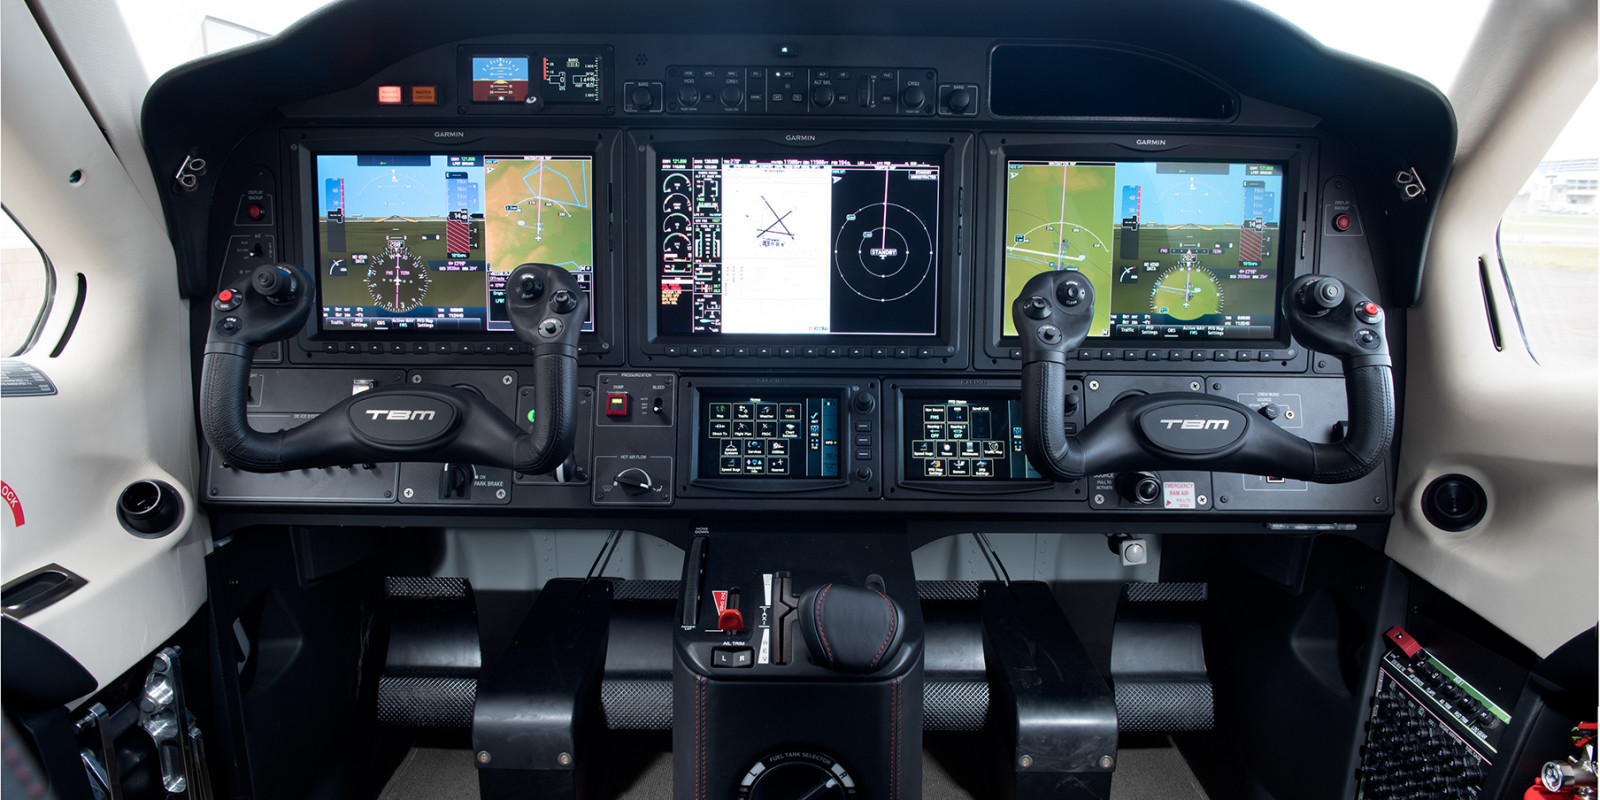 The latest and greatest in integrated glass cockpit avionics with redundancies for safety and real-time satellite data up-links